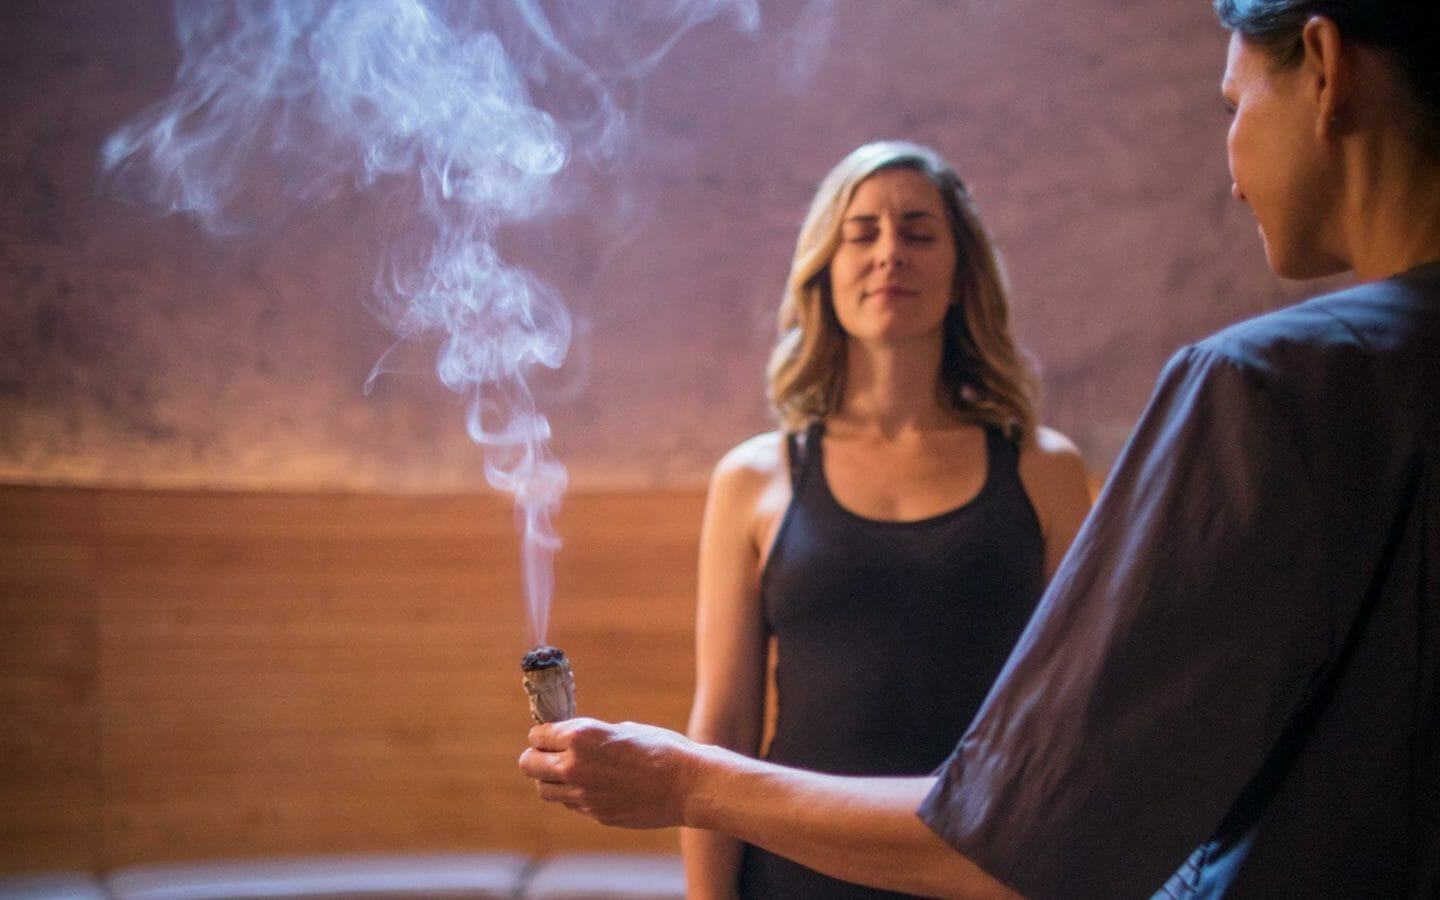 two women in a spa room with sage burning